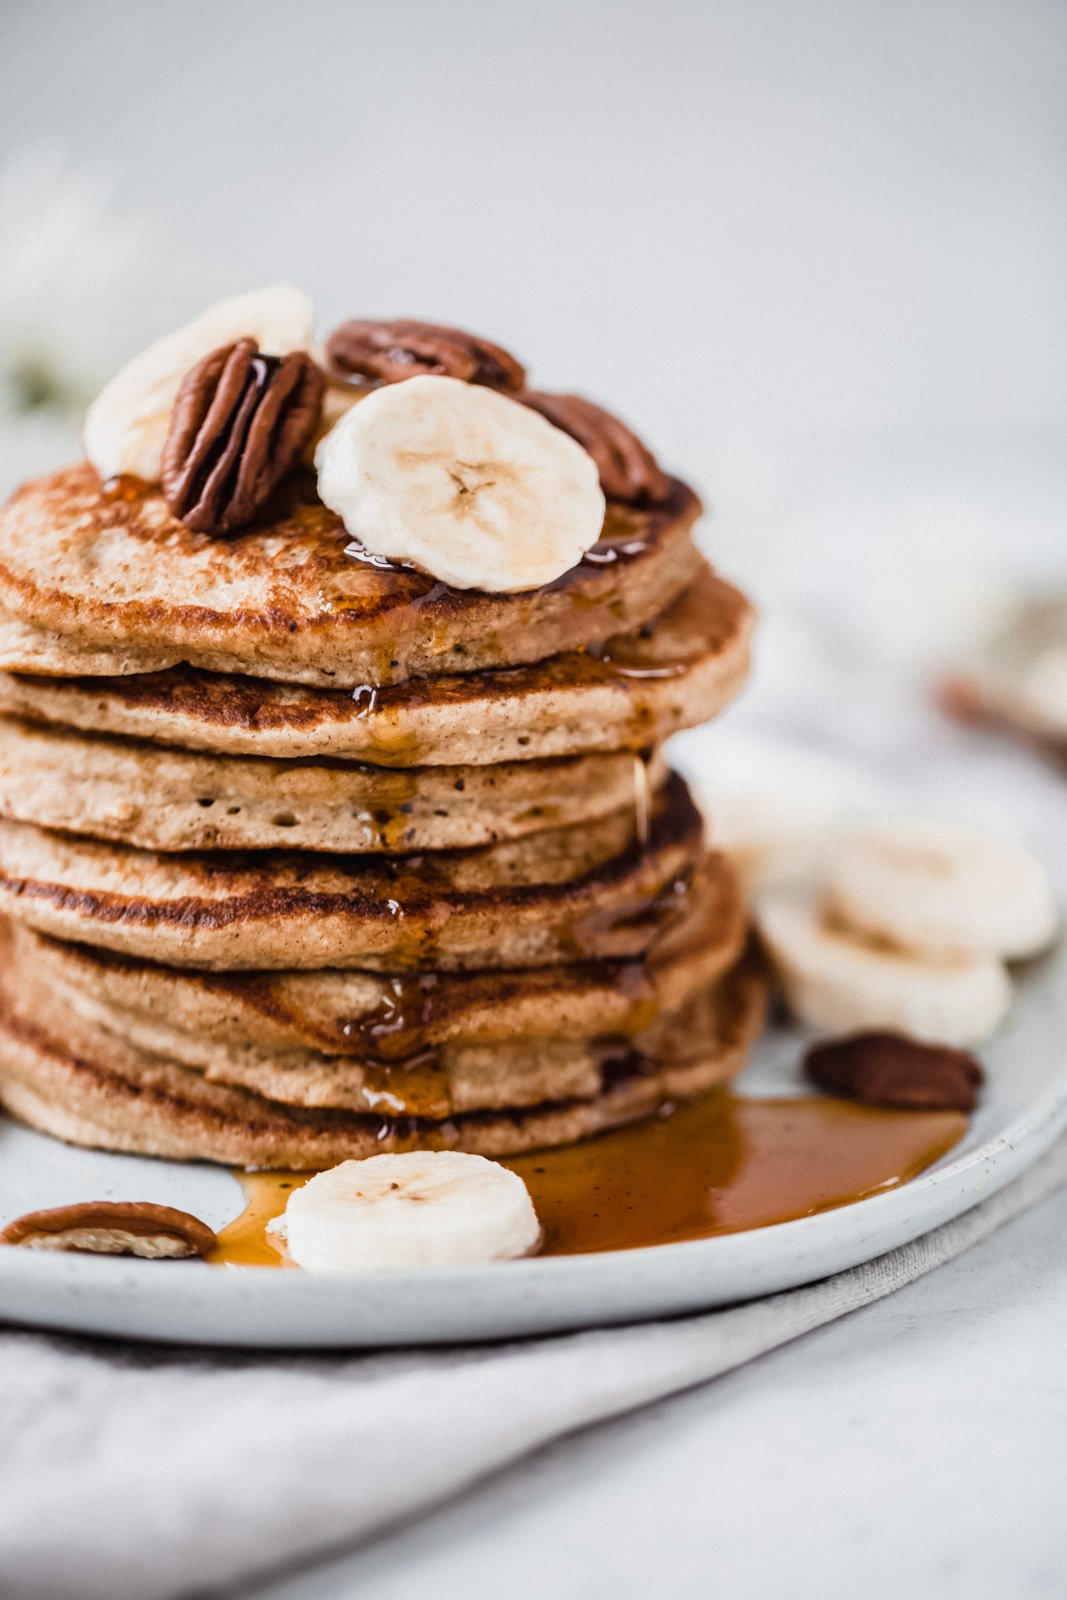 banana oatmeal pancakes in a stack on a plate topped with pecans and banana slices